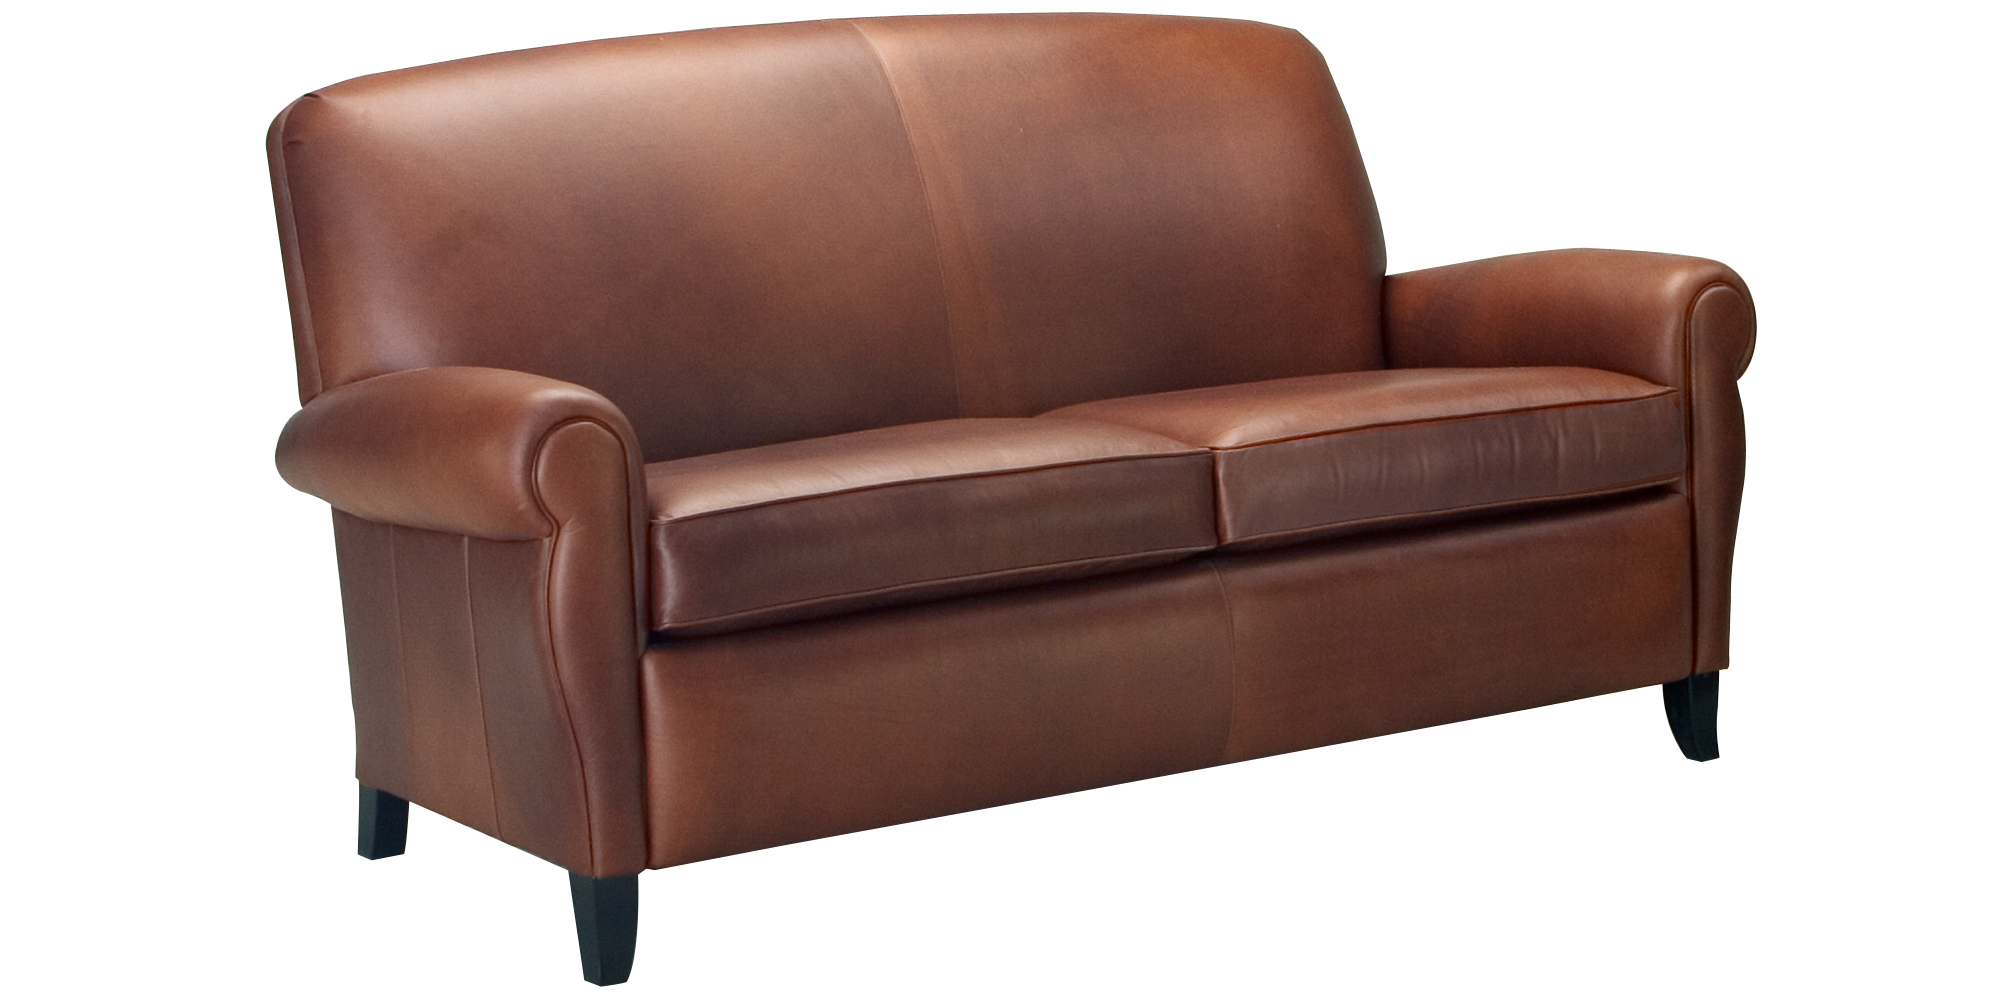 Apartment size two seat leather sofa collection club for Apartment size leather sofas